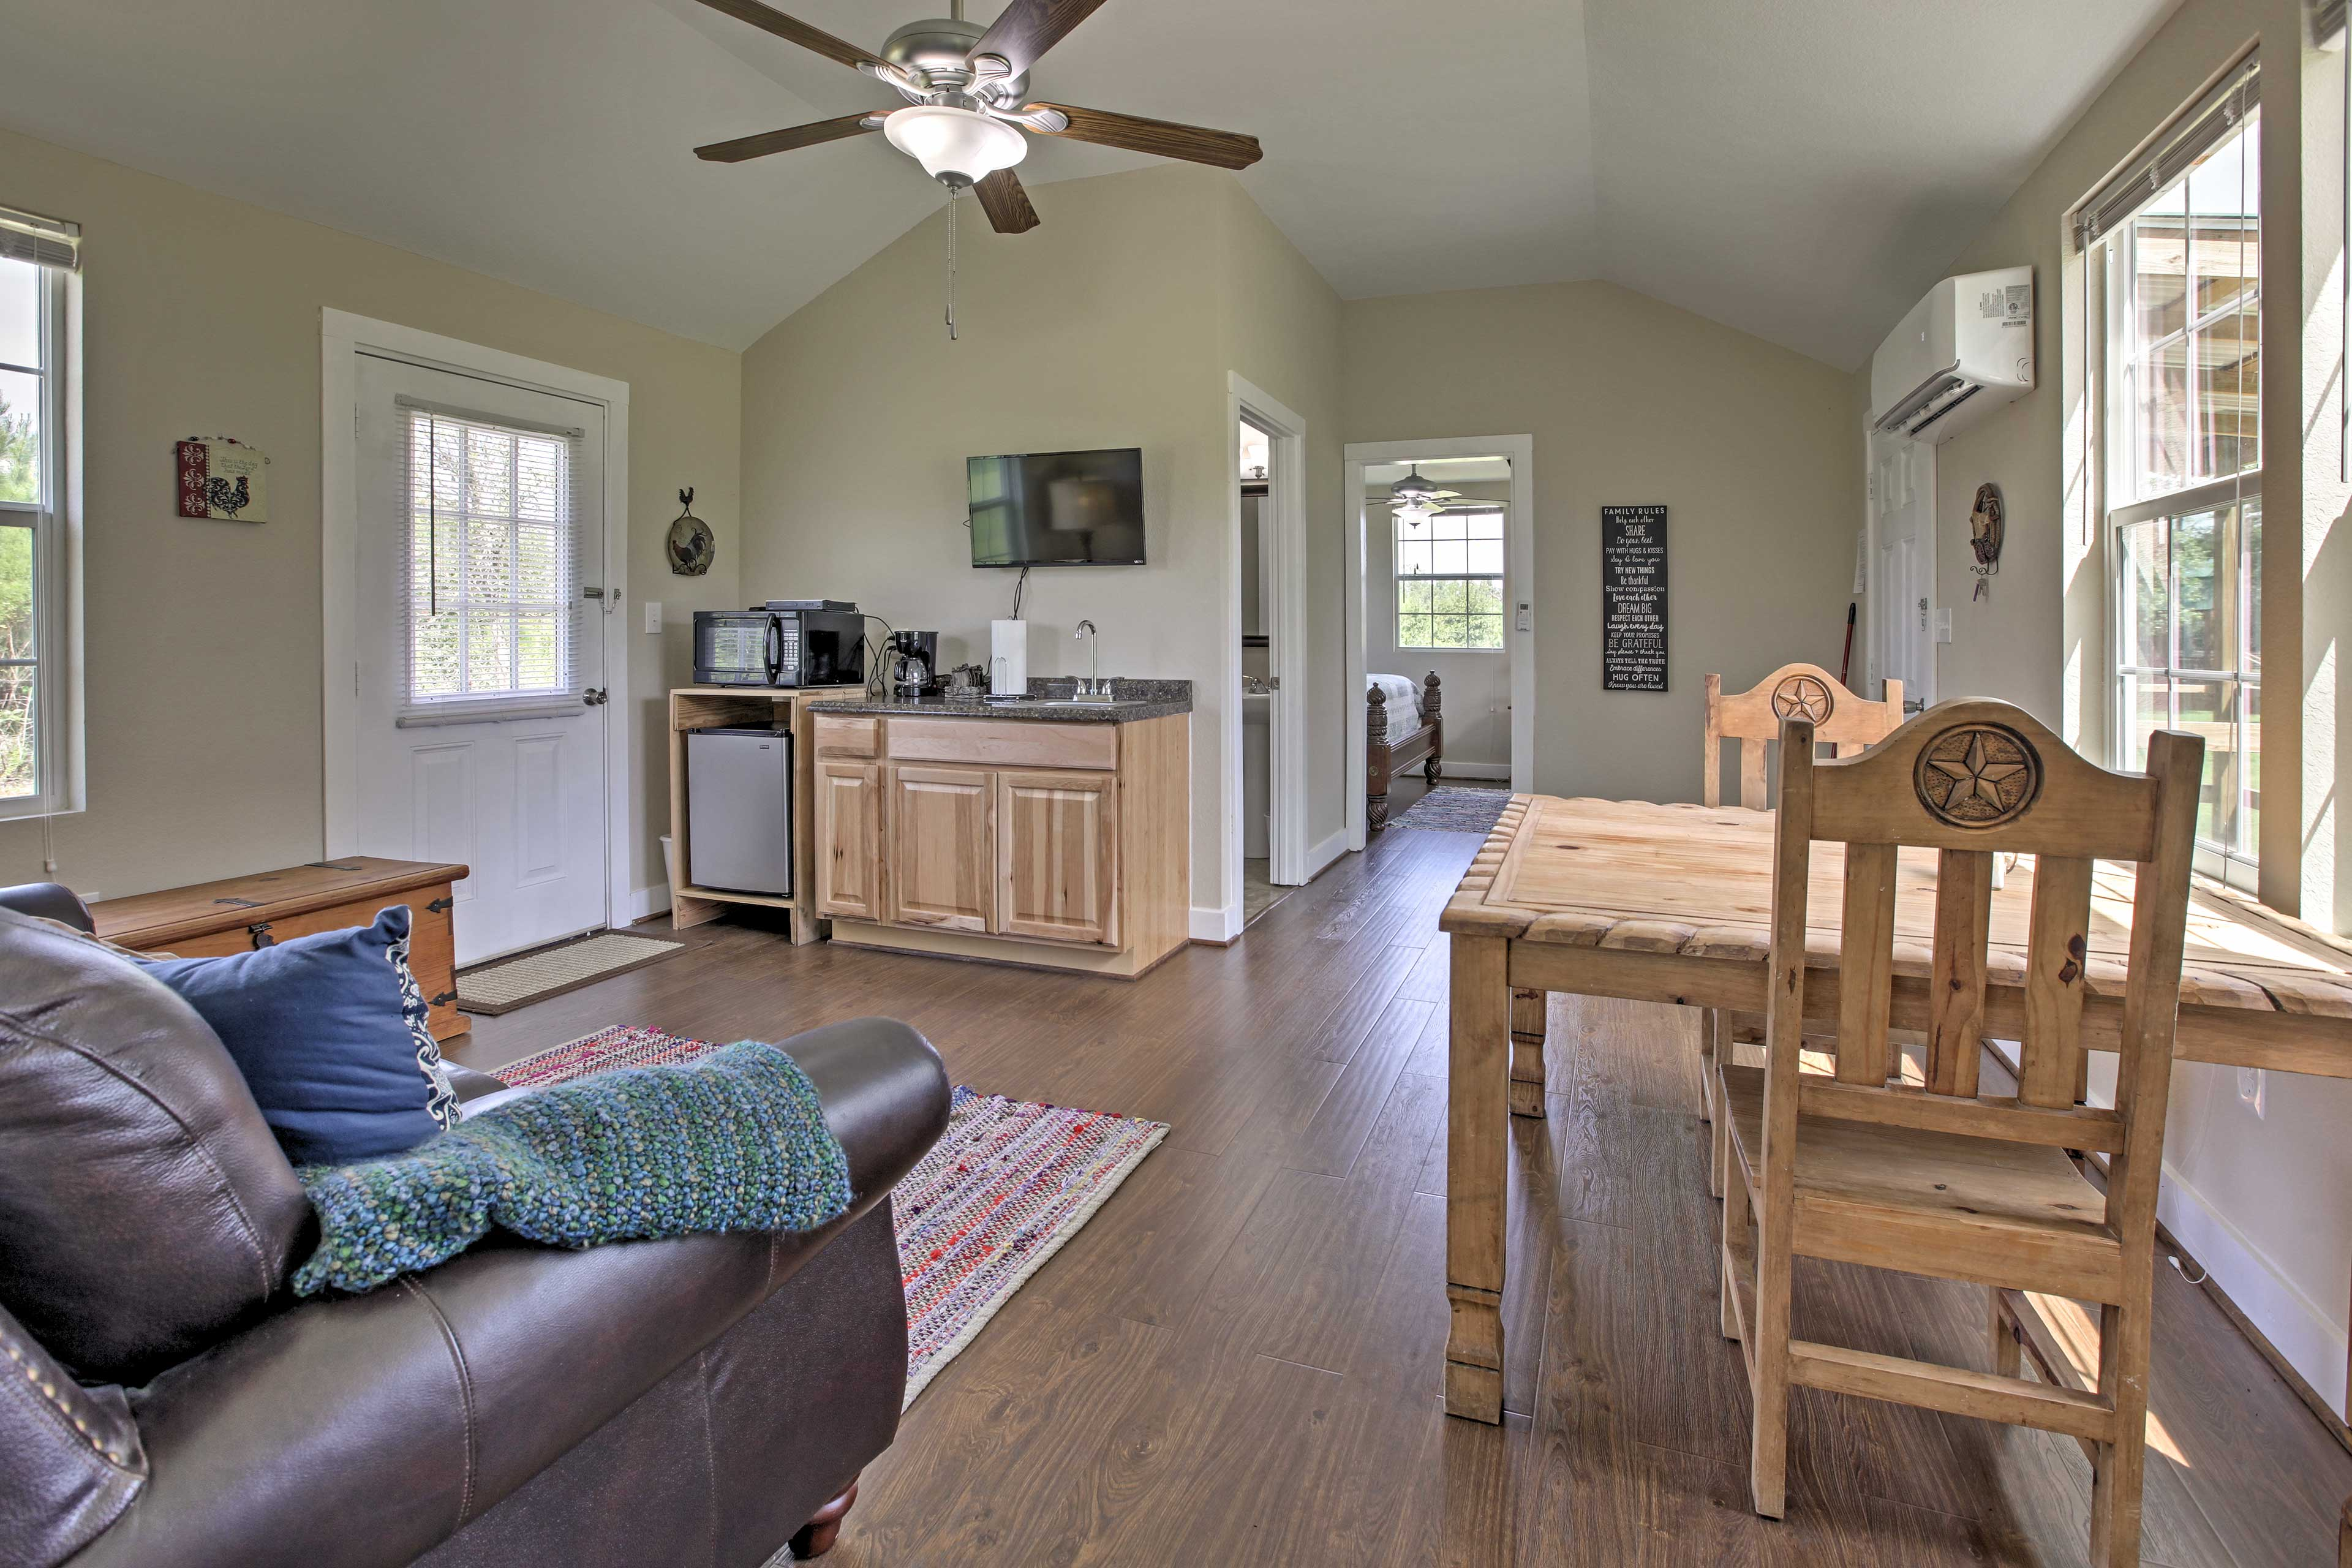 The cabin's interior boasts an open-concept layout and quaint decor.